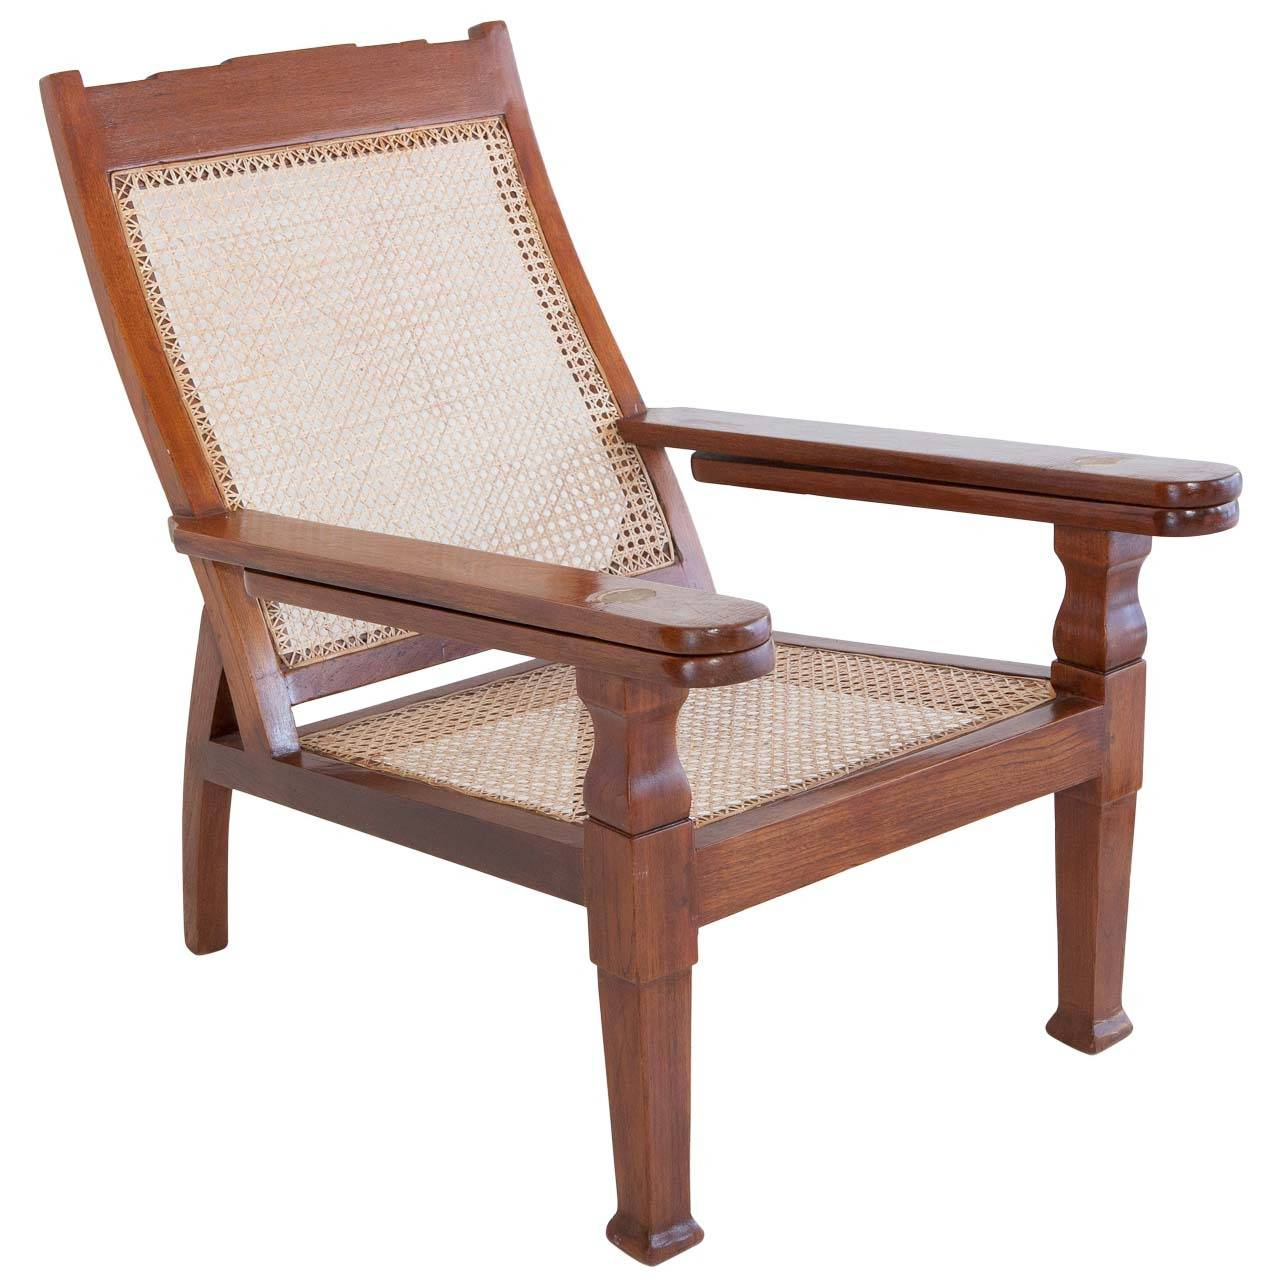 Anglo Indian Teak Plantation Chair at 1stdibs : 1518292l from www.1stdibs.com size 1280 x 1280 jpeg 124kB